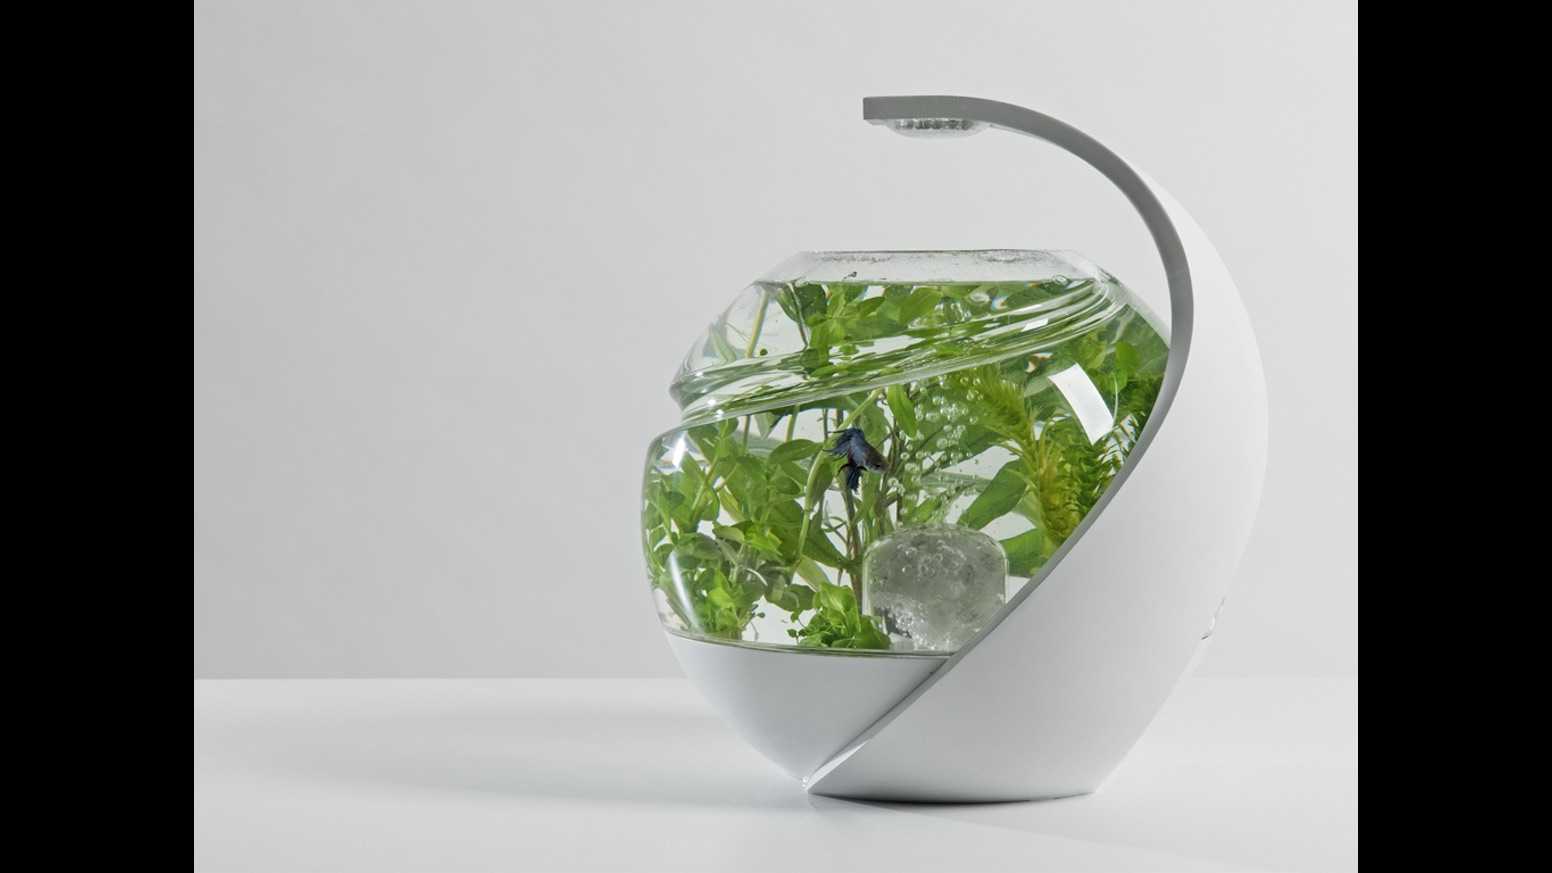 Fish tank you never have to clean - Avo The Self Cleaning Tropical Fish Tank